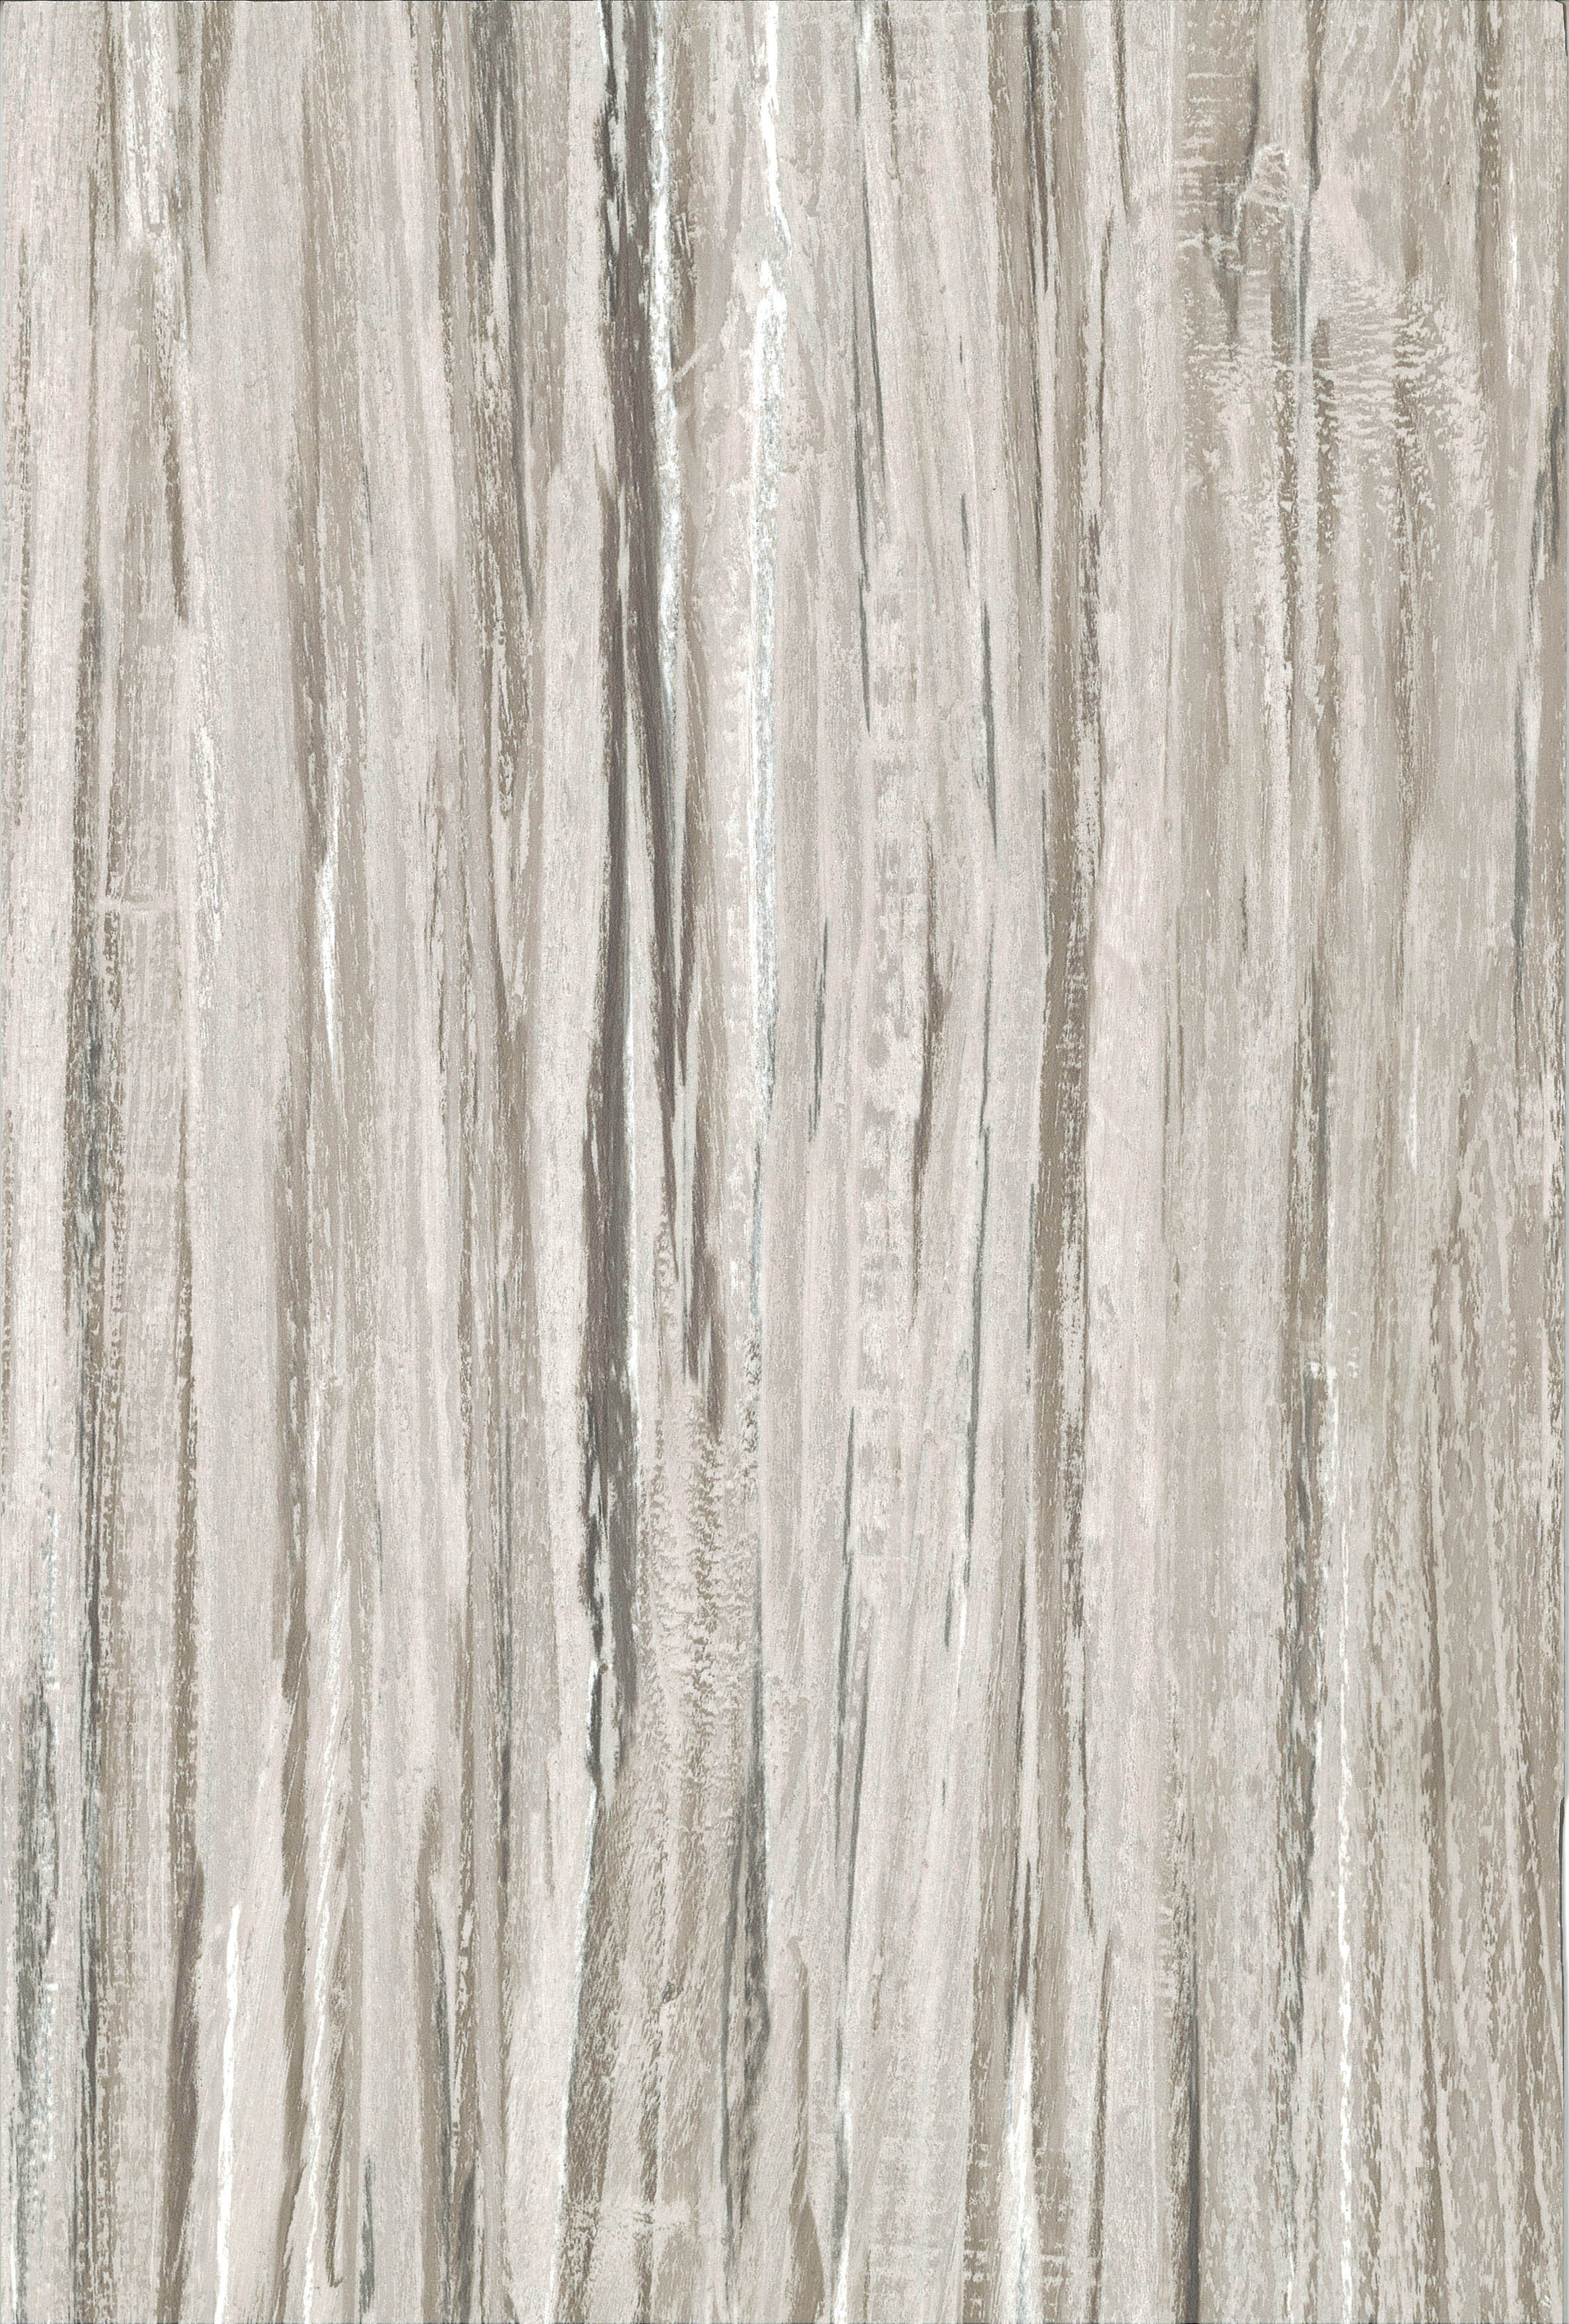 BWK 8389 DM - Panazzo Wood High Pressure Laminate (HPL), Billiona Enterprise Singapore